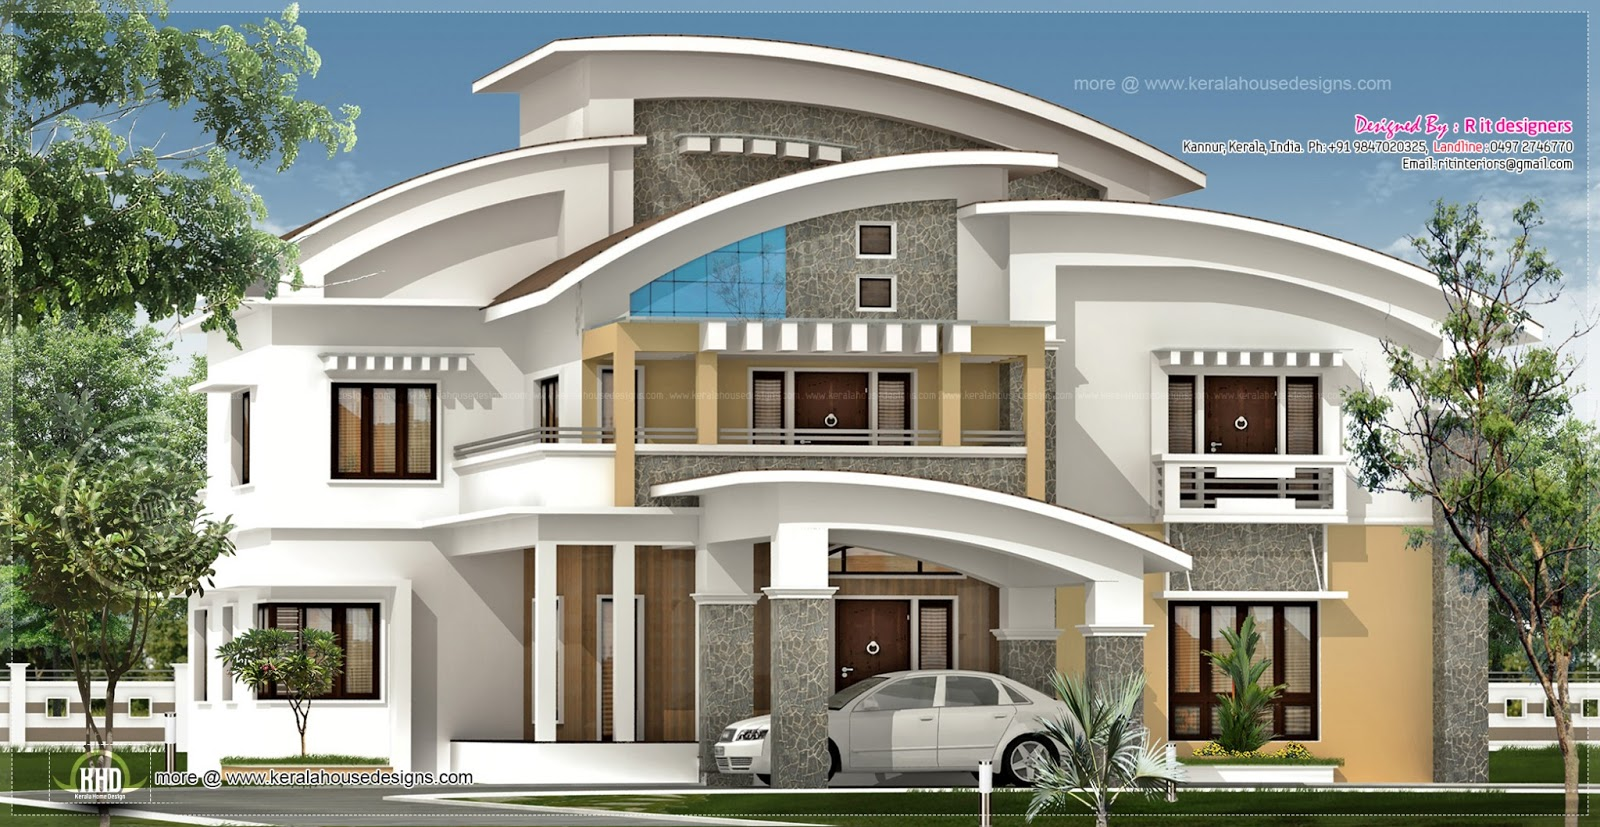 3750 square feet luxury villa exterior style house 3d models